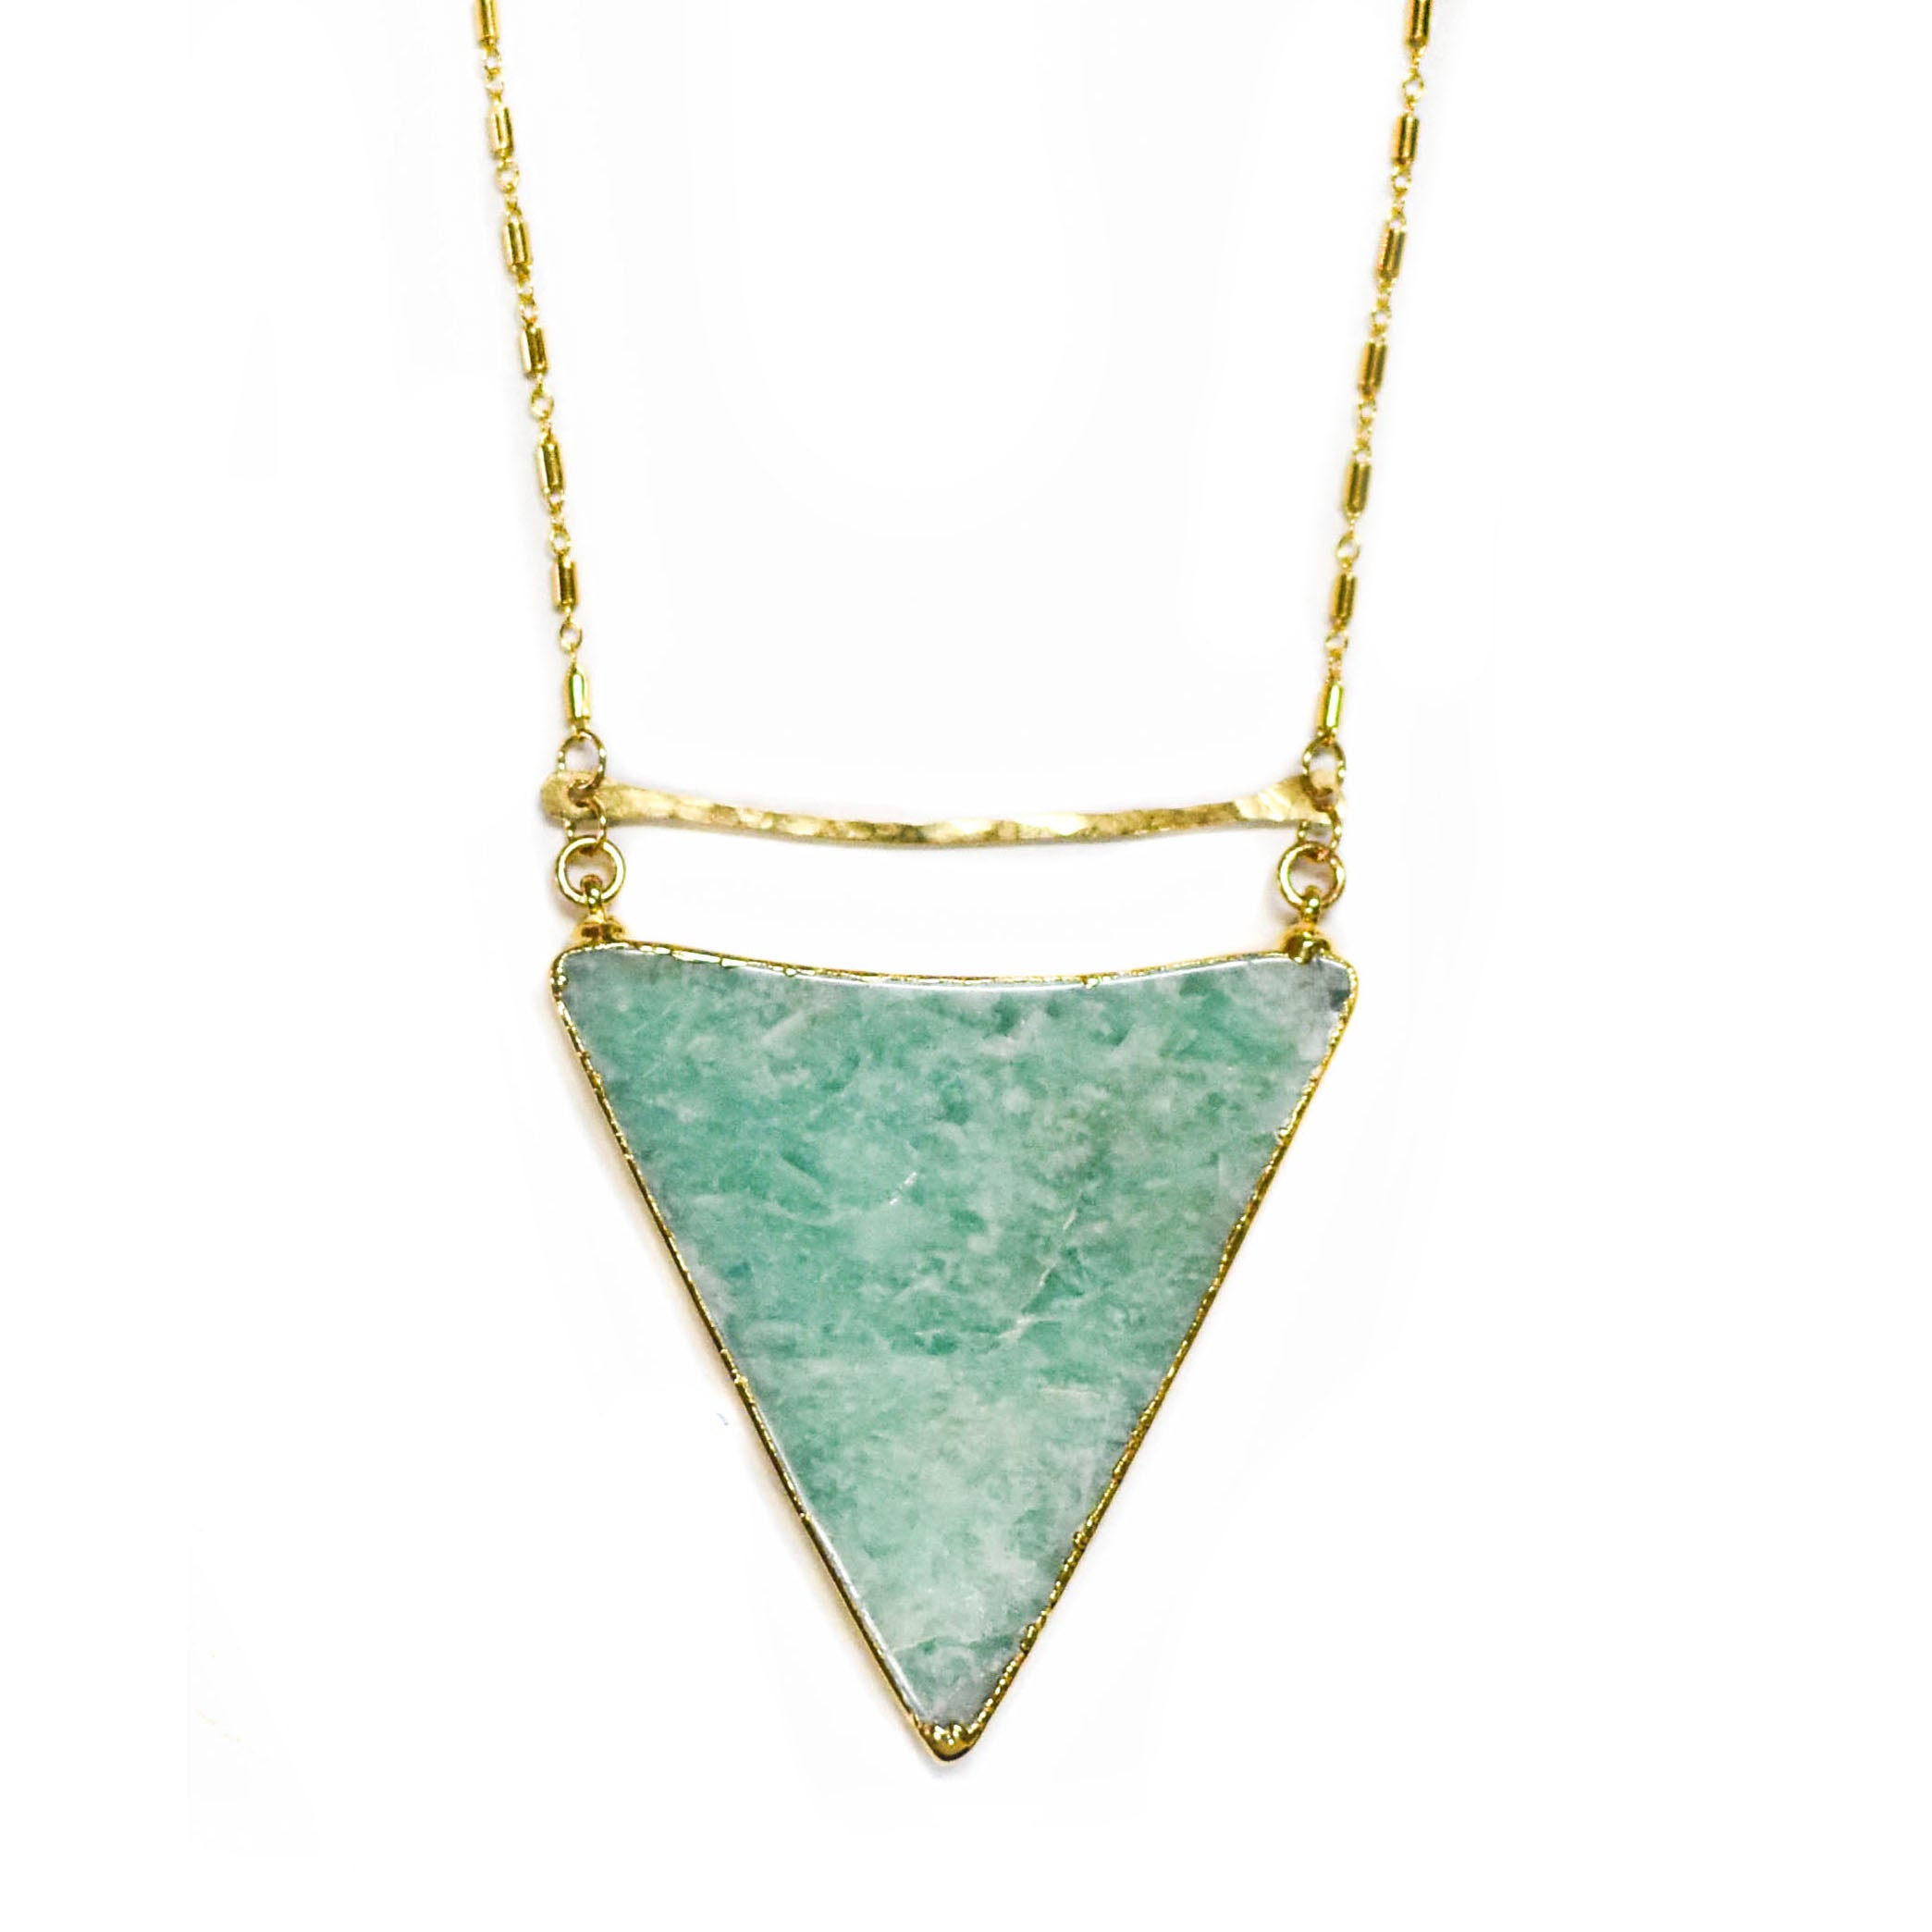 Necklace - Vitality (Amazonite)